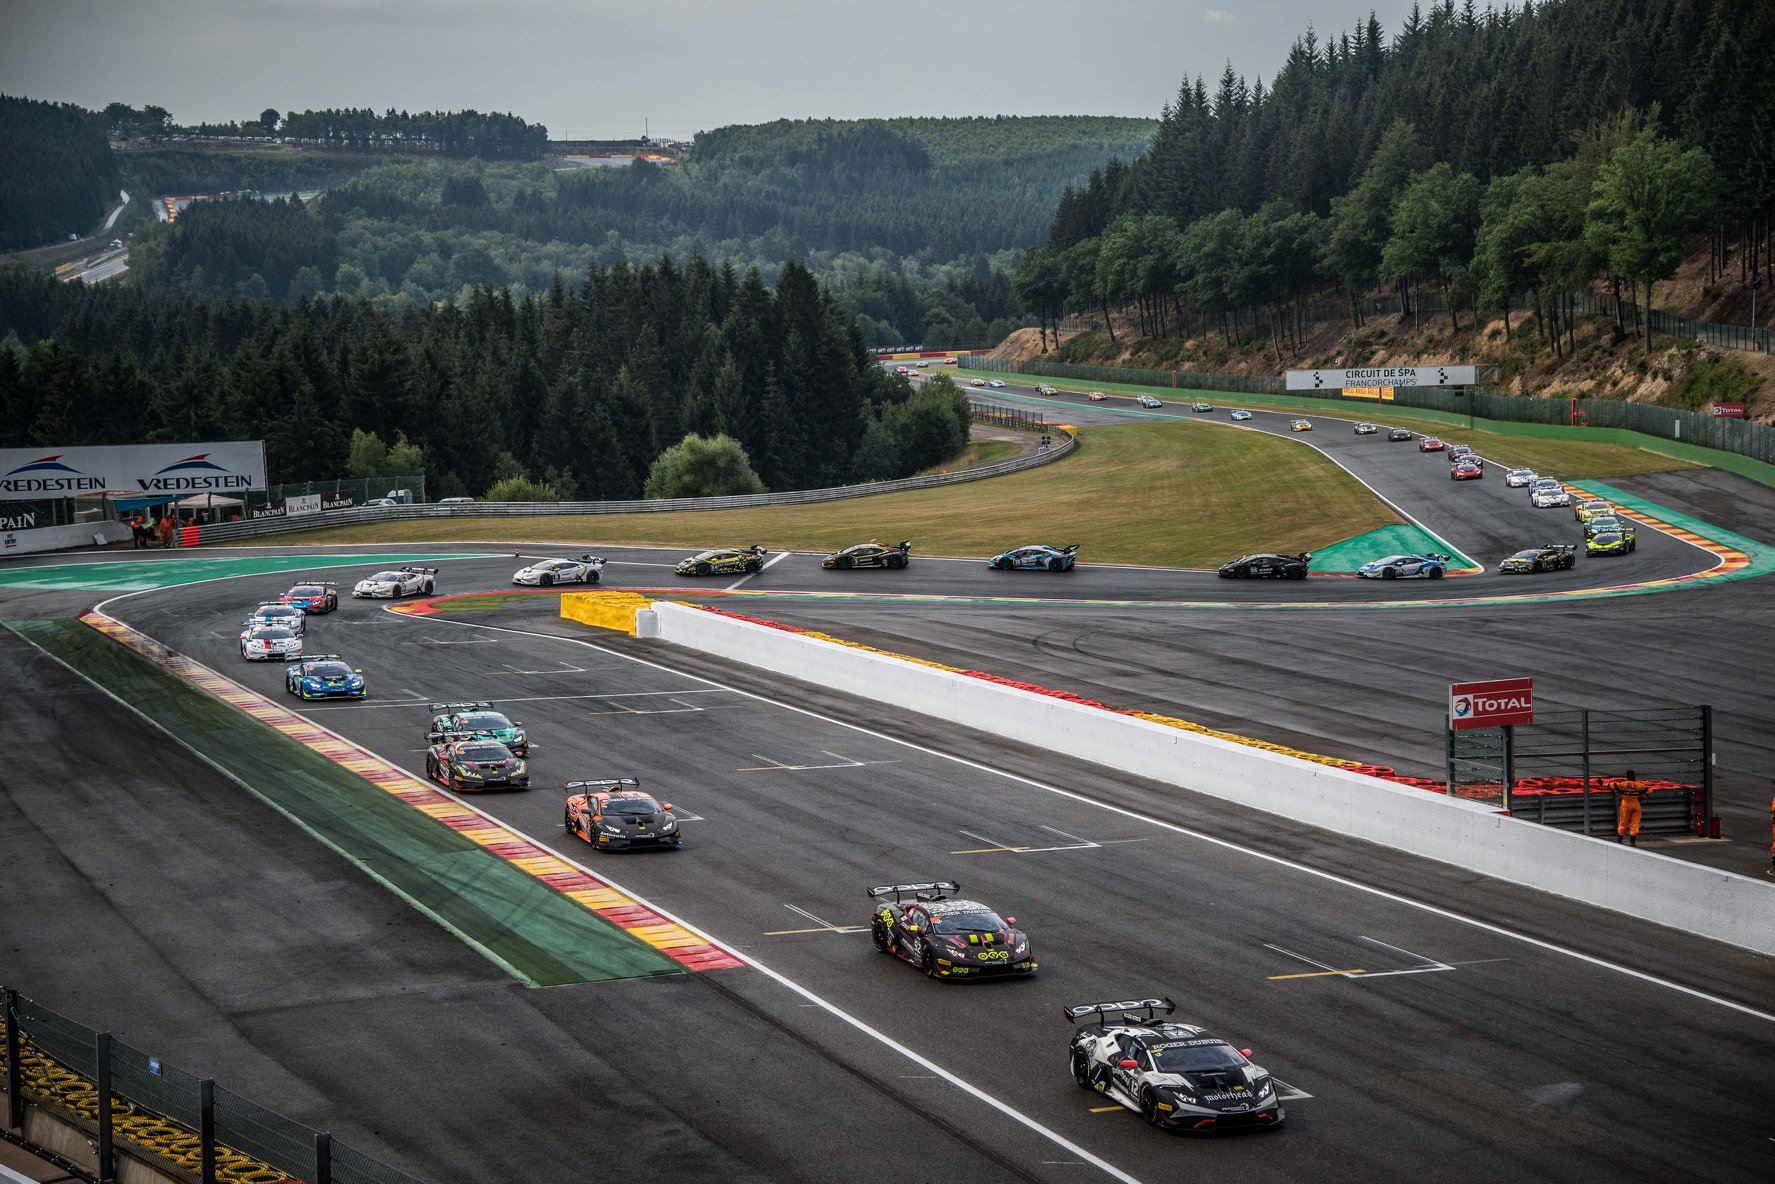 Target Racing wins the class at Spa Pro Am in the Lamborghini Super Trofeo